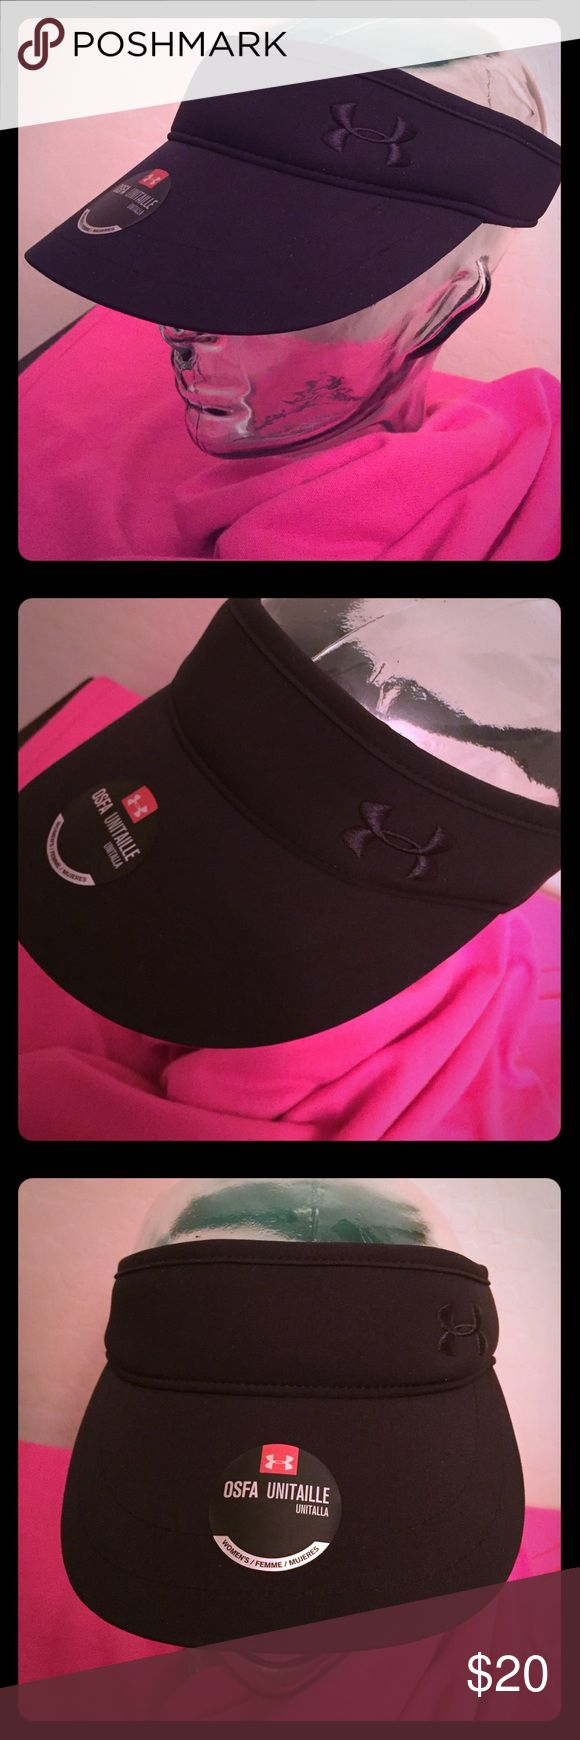 🆕 Under Armour Storm1 Women's Visor Authentic Under Armour Storm1 Women's Visor. OS. Black. UA Logo on the Left Side. Adjustable Back. Water-Resistant. UPF 30. 90% Polyester/10% Elastane. Brand New. Excellent Condition. No Trades. Check out the Other Cool Visors in My Closet.👌🏽 Under Armour Accessories Hats